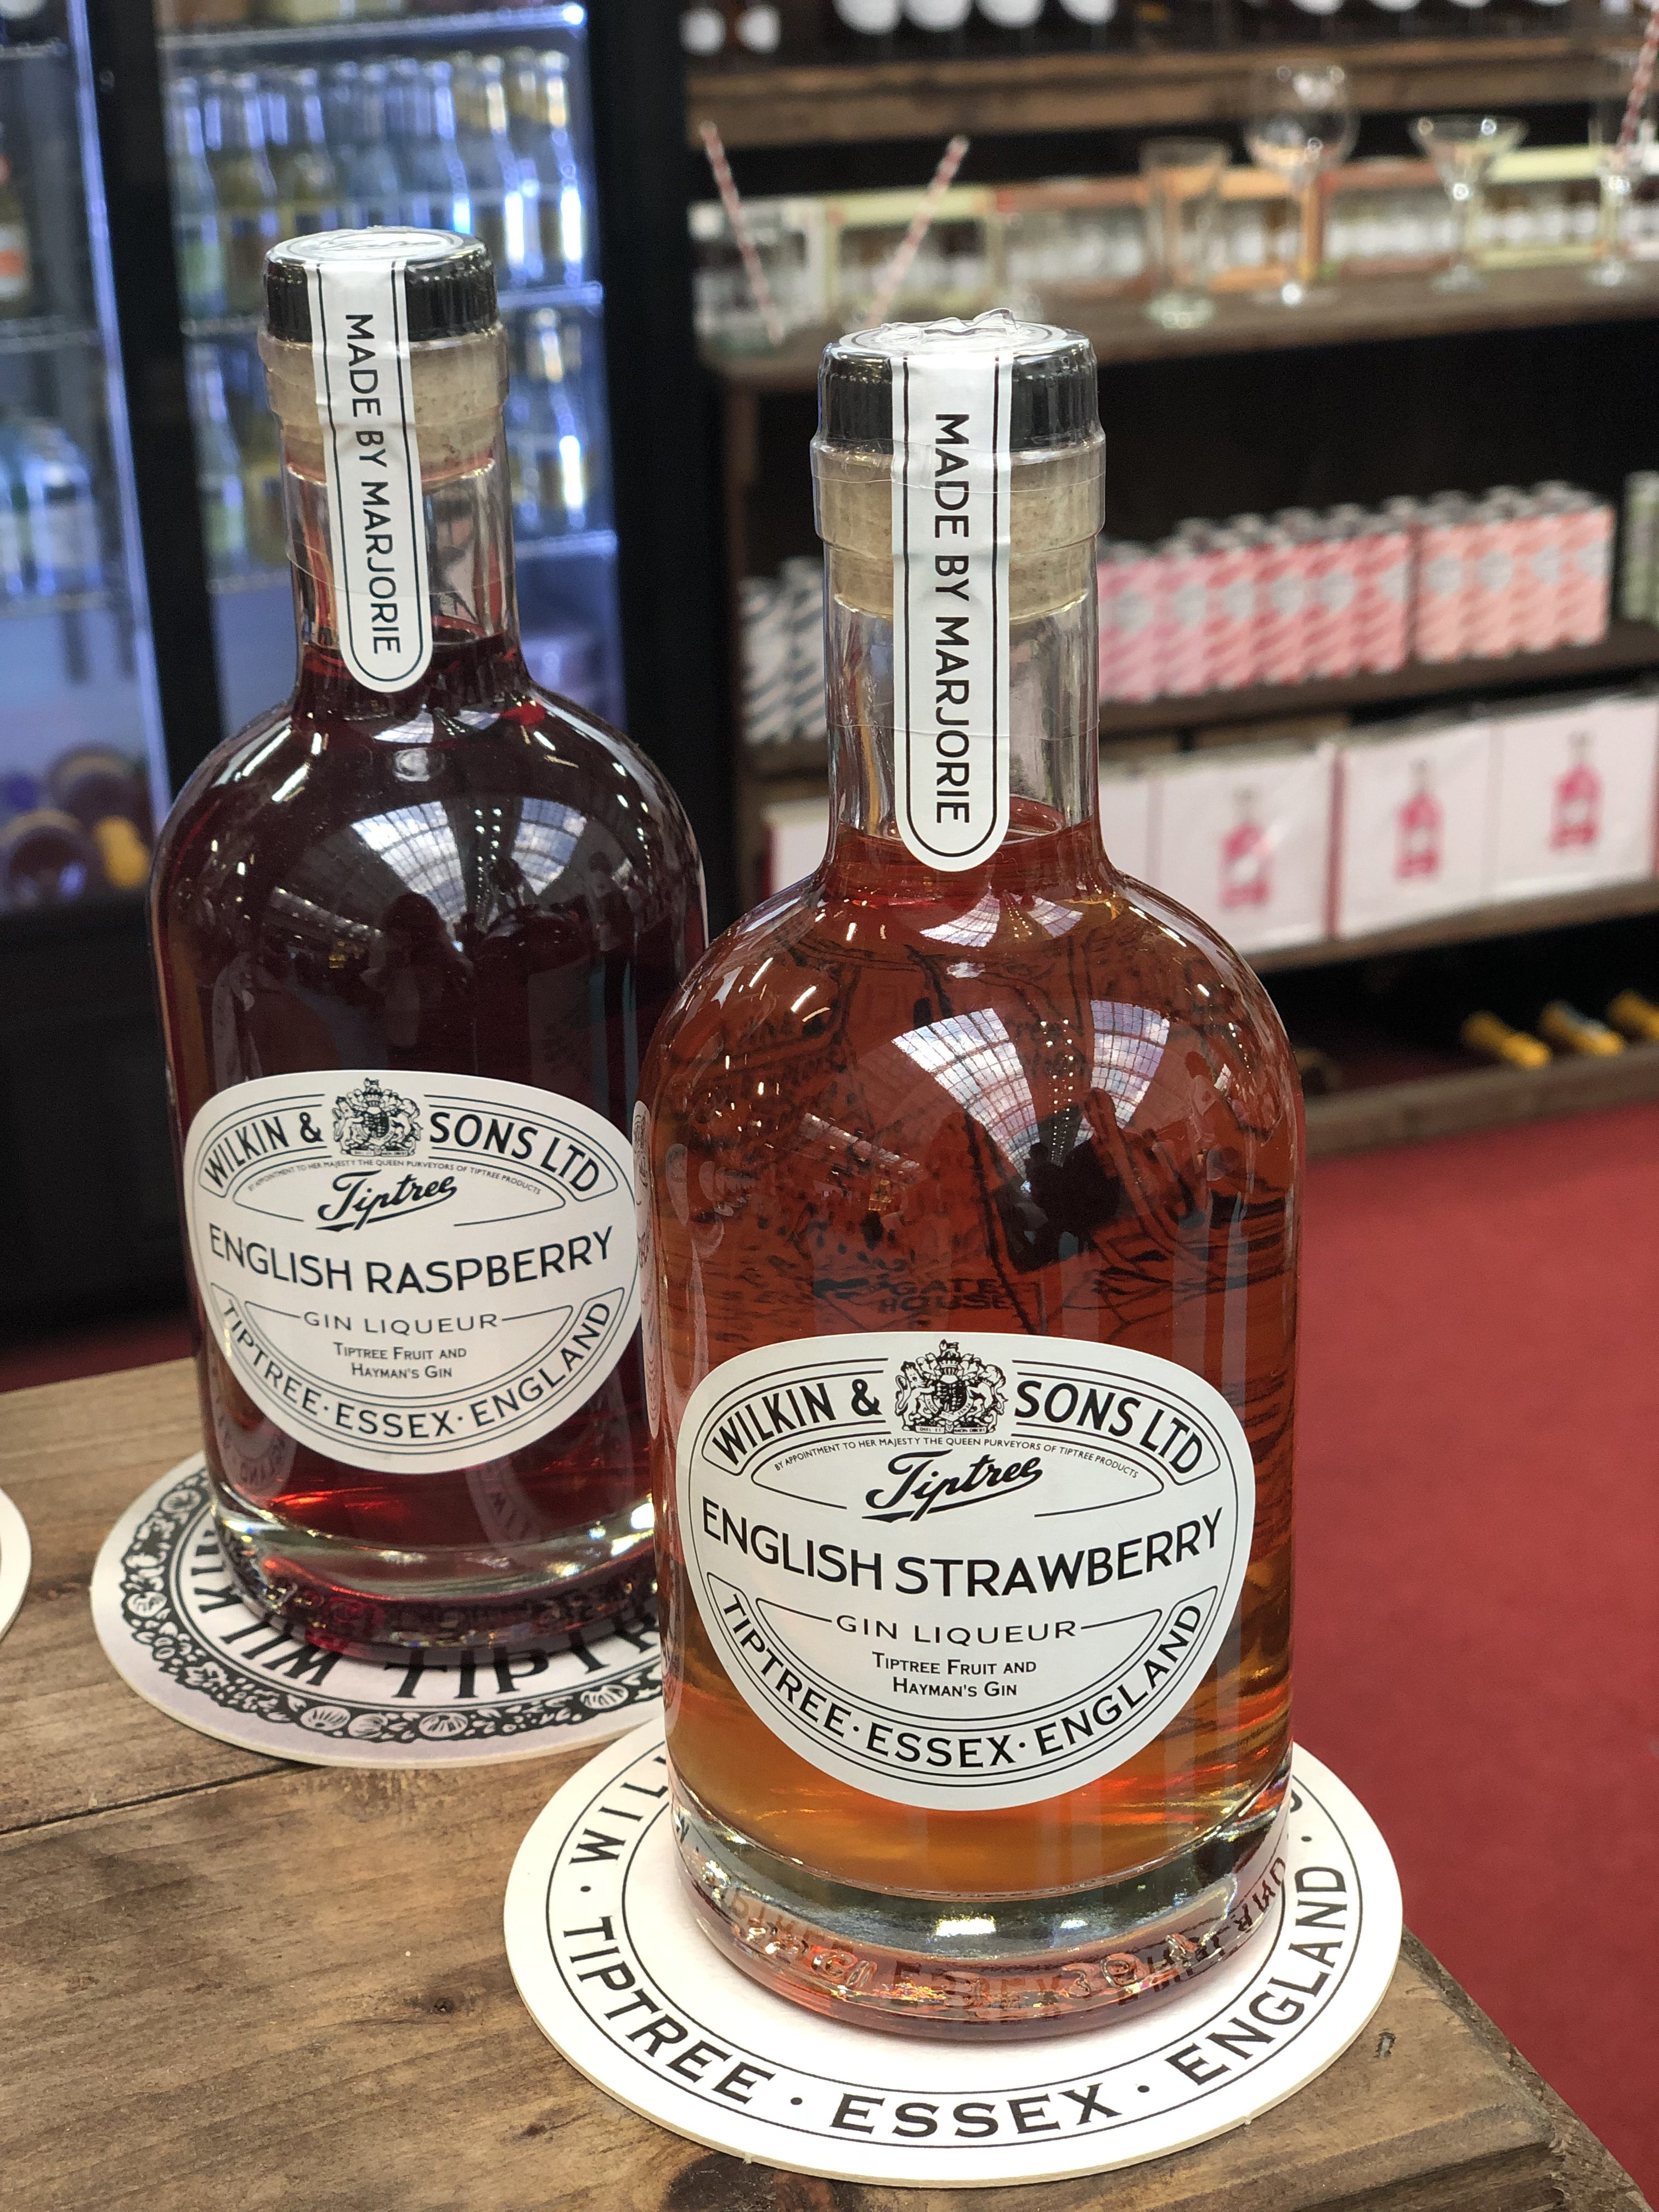 Tiptree gin liqueur, gin npd, gin marketing, gin branding